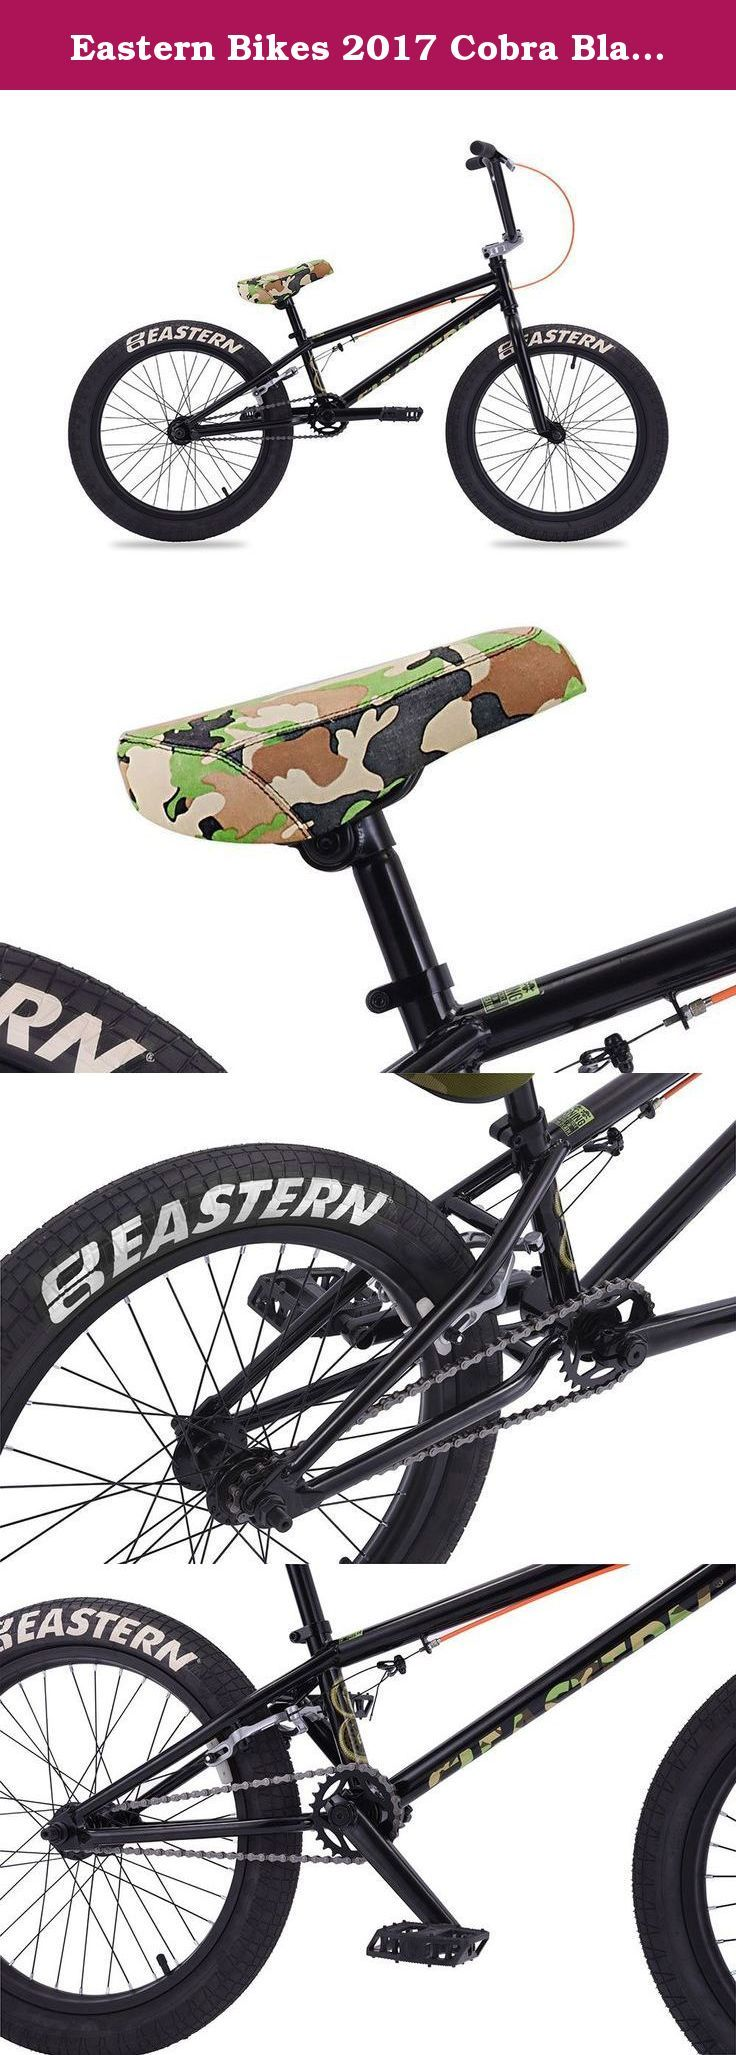 Eastern Bikes 2017 Cobra Black / Camo. The Cobra is a great beginner BMX bike for young riders and sold by the bicycle experts at Bike853 who are ready to help you with any questions you have before and after the sale to keep your Eastern Bike running smooth for years to come. The Cobra comes with a hi-tensile steel frame, sealed front and rear hubs and 3-piece tubular chromoly cranks for long-lasting dependability. The Cobra also comes with a 25/9 micro gearing and Eastern grips and seat...